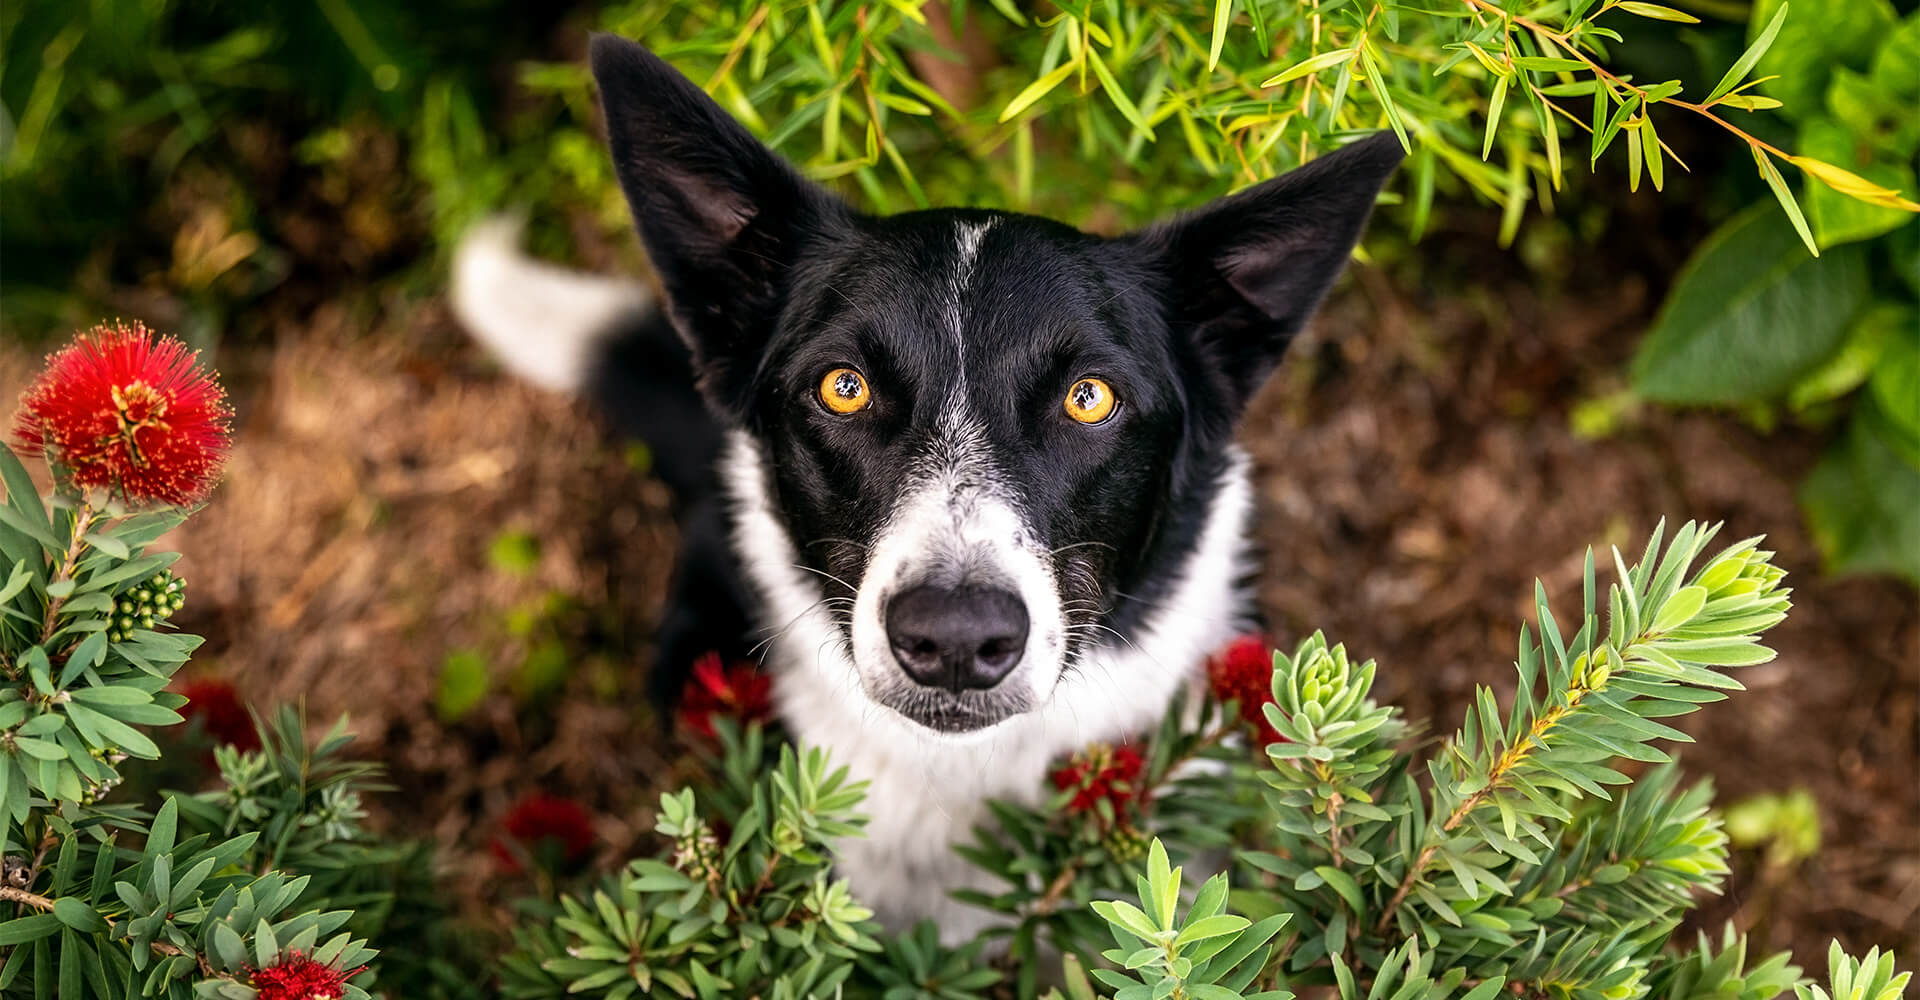 Border Collie sitting in native flower garden